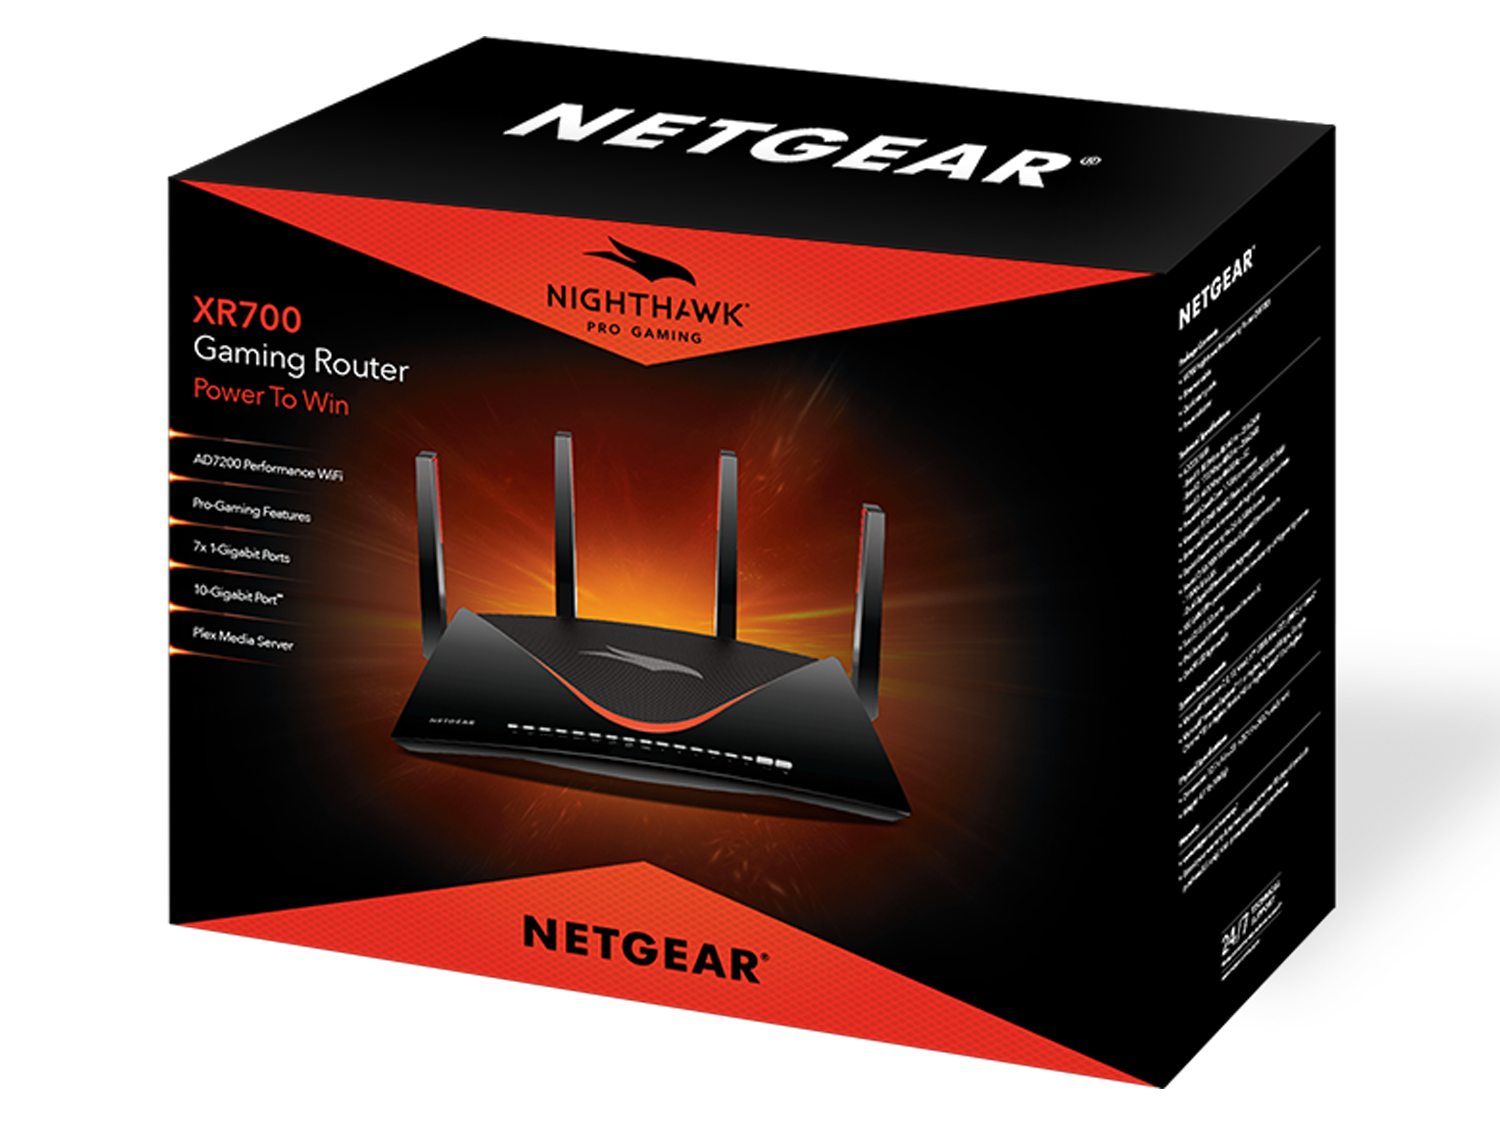 How to install and Setup Netgear XR700 – Nighthawk Pro Gaming Router?